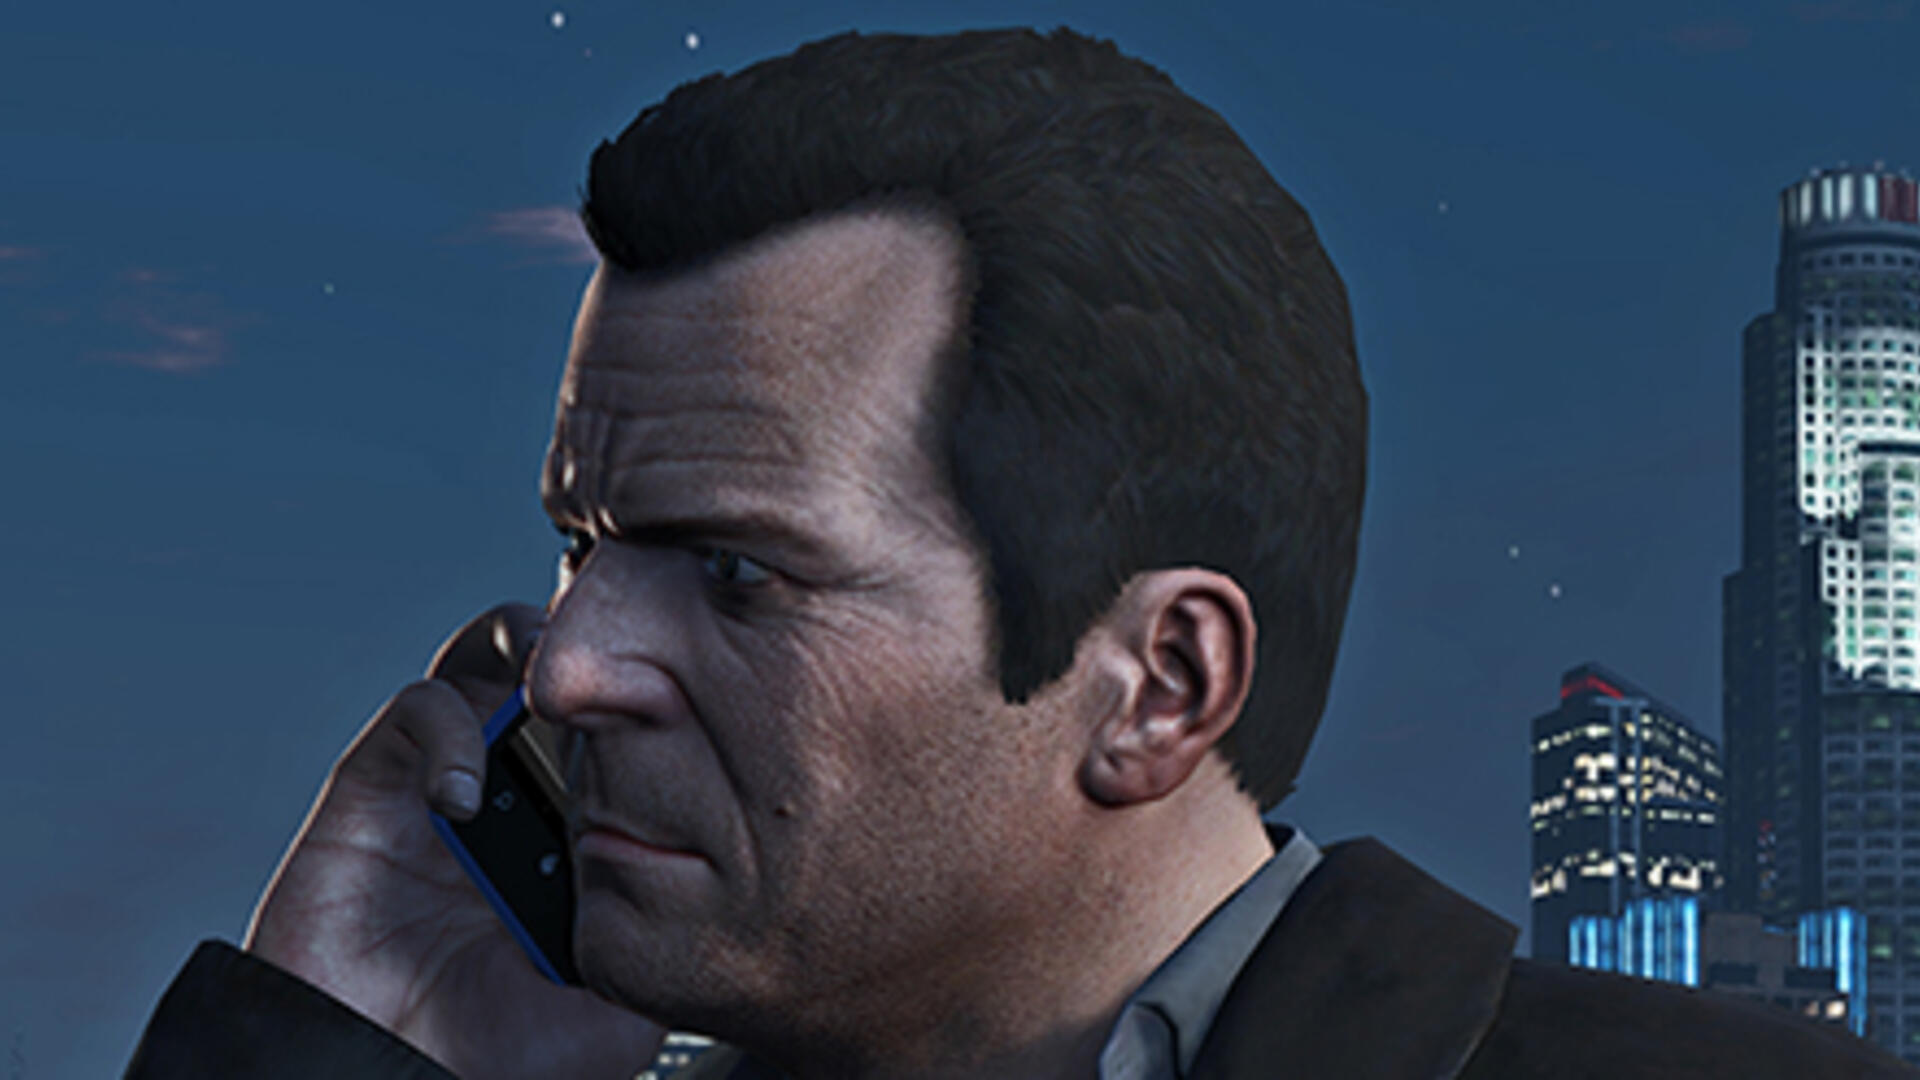 GTA 5 Guide: Complete Heists Guide, Make Lots Of Money